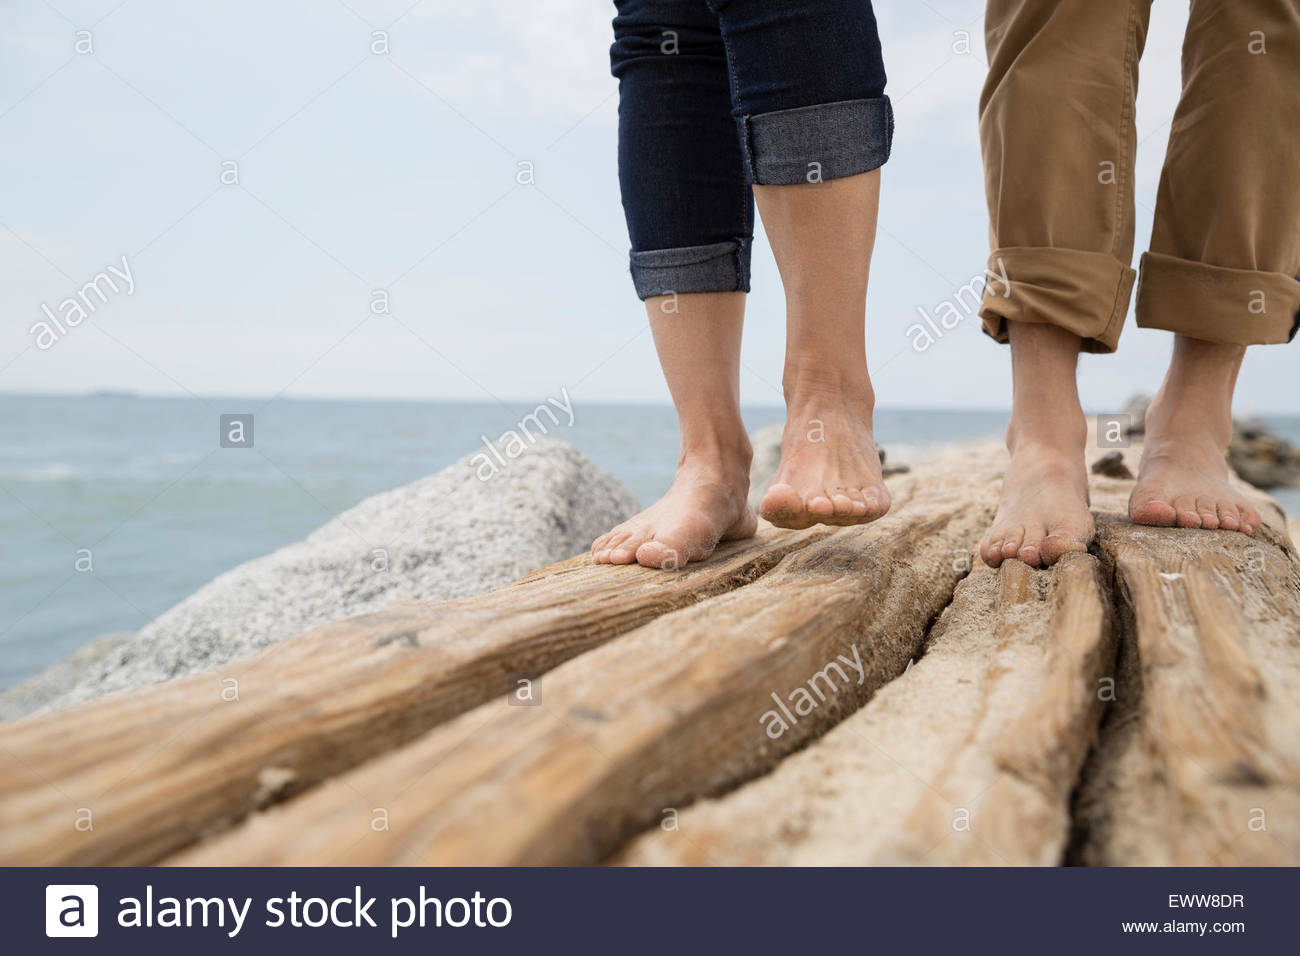 Close up bare feet of couple on ocean jetty - Stock Image